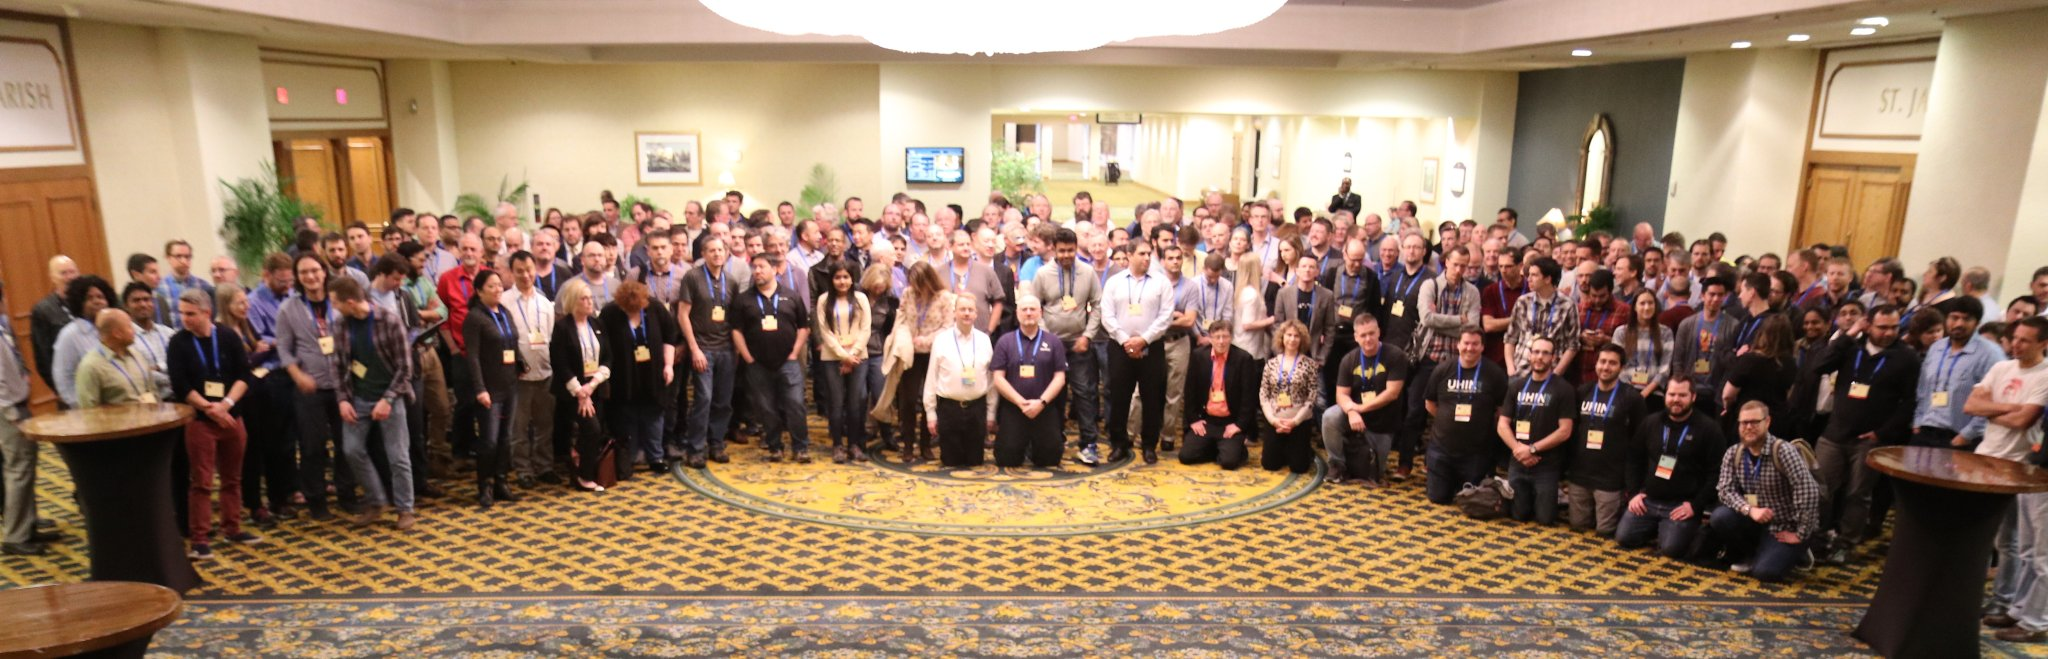 fhir-connectathon-17-new-orleans-group-picture-credit-HL7.jpg